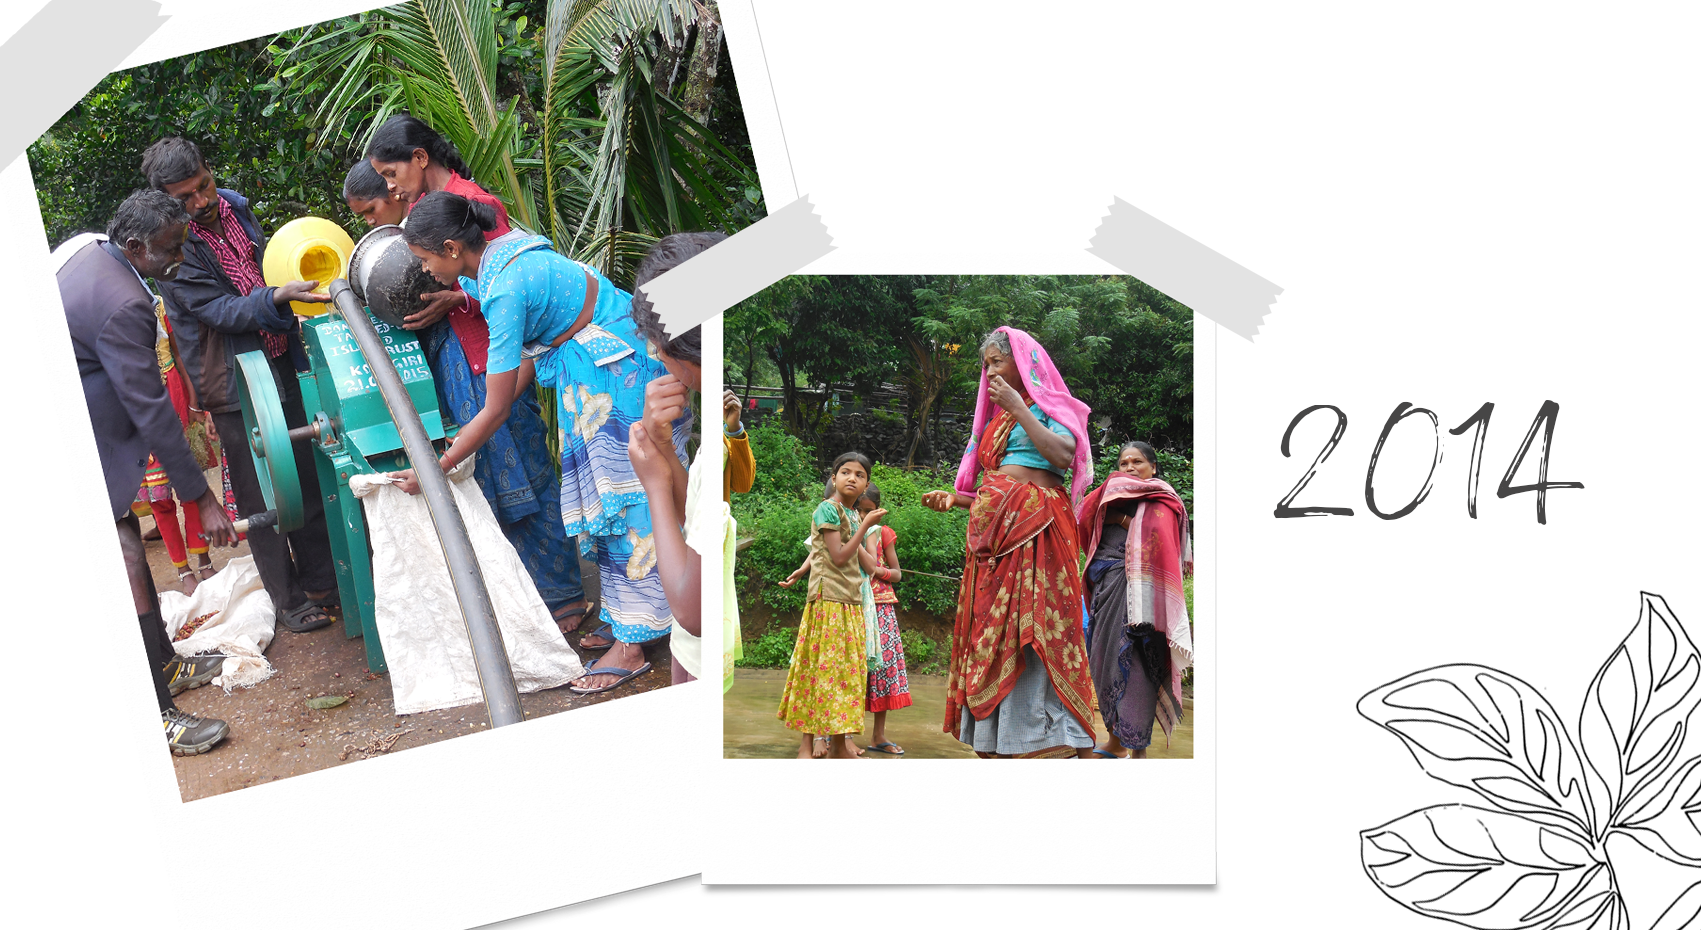 Tamwed charity organisation rural India